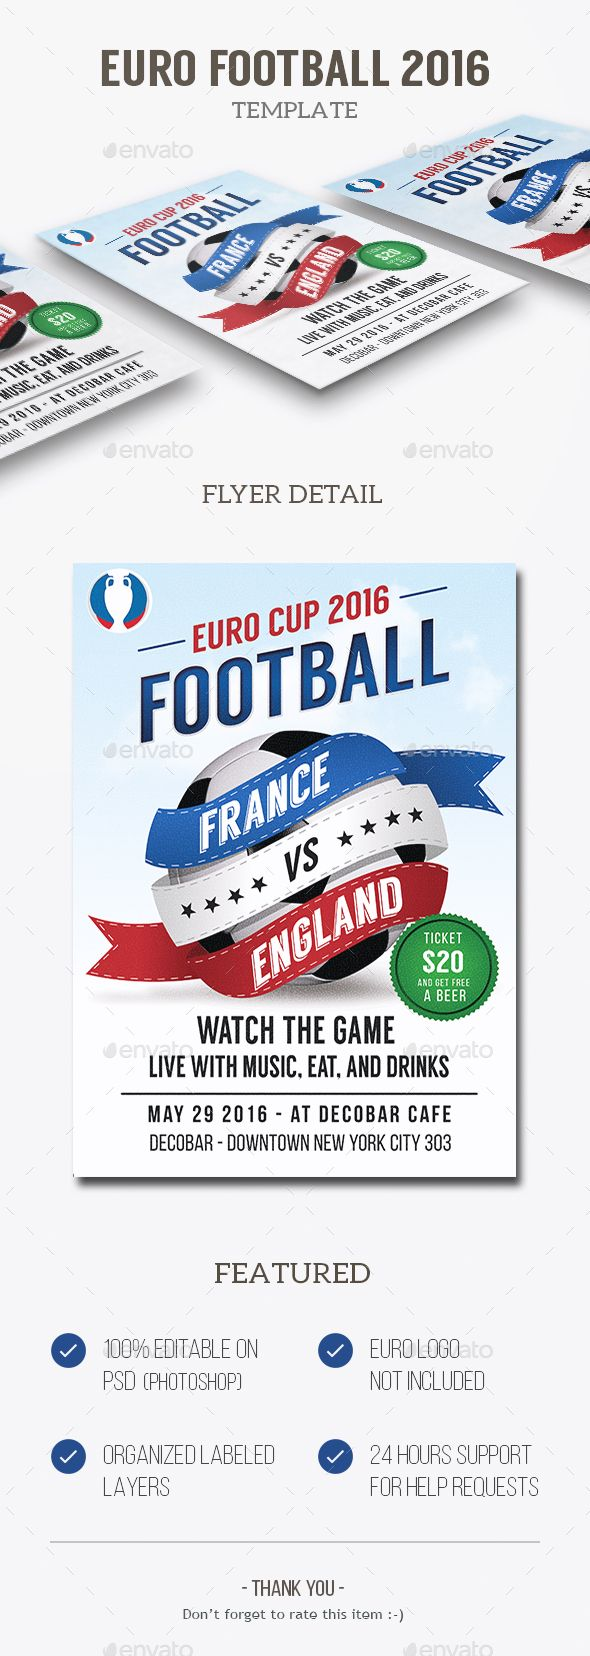 Euro Football   Flyer template, Event flyers and Event flyer templates